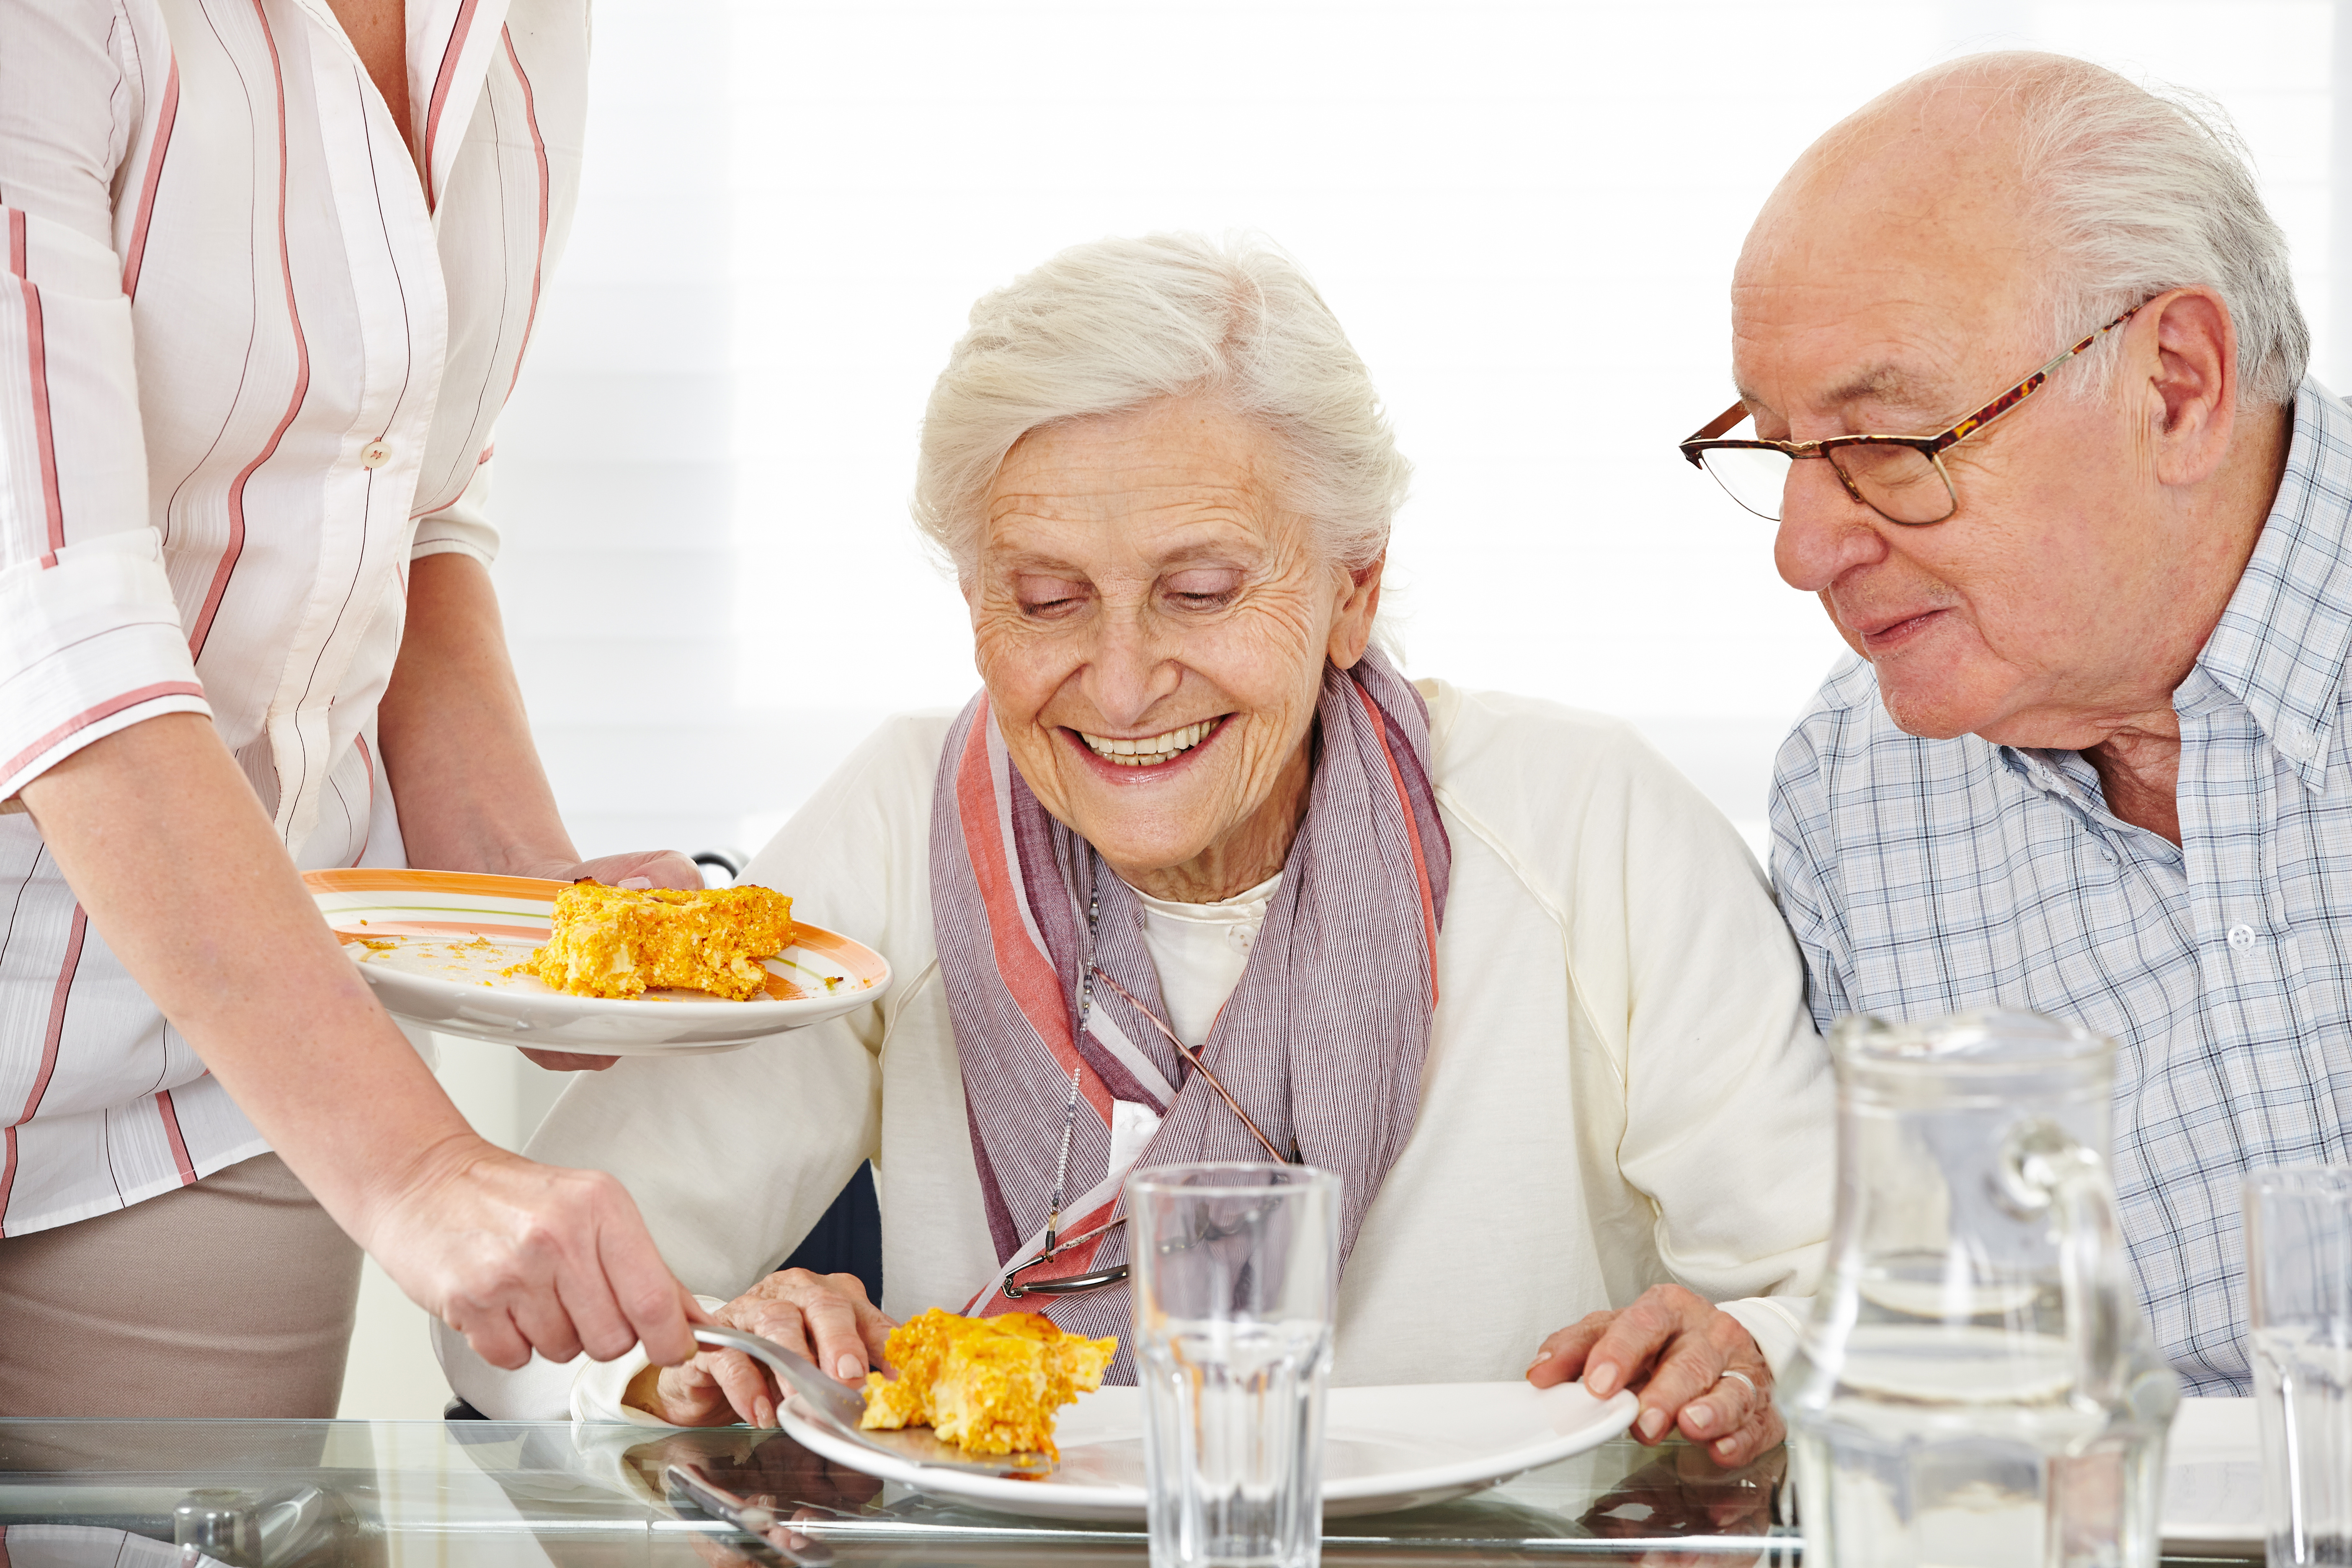 What makes a great aged care menu?